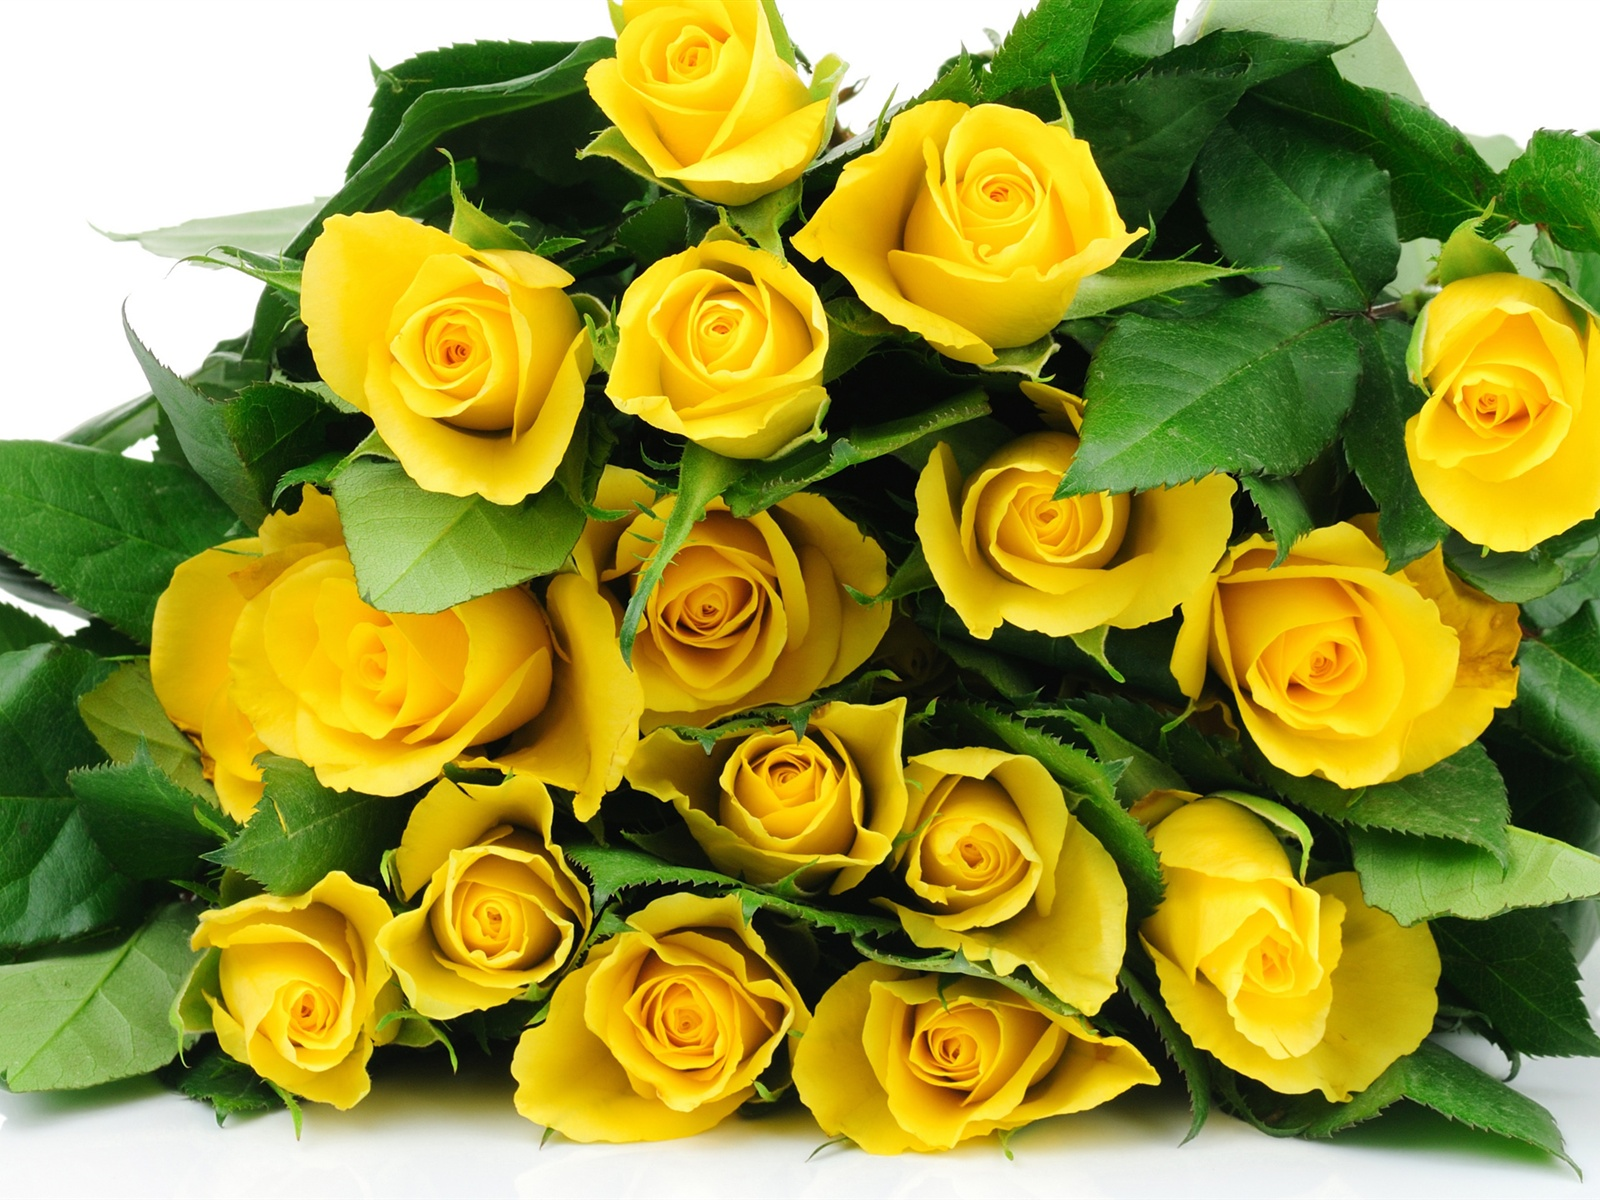 Wallpaper a bouquet flowers yellow roses 2560x1440 qhd picture image mightylinksfo